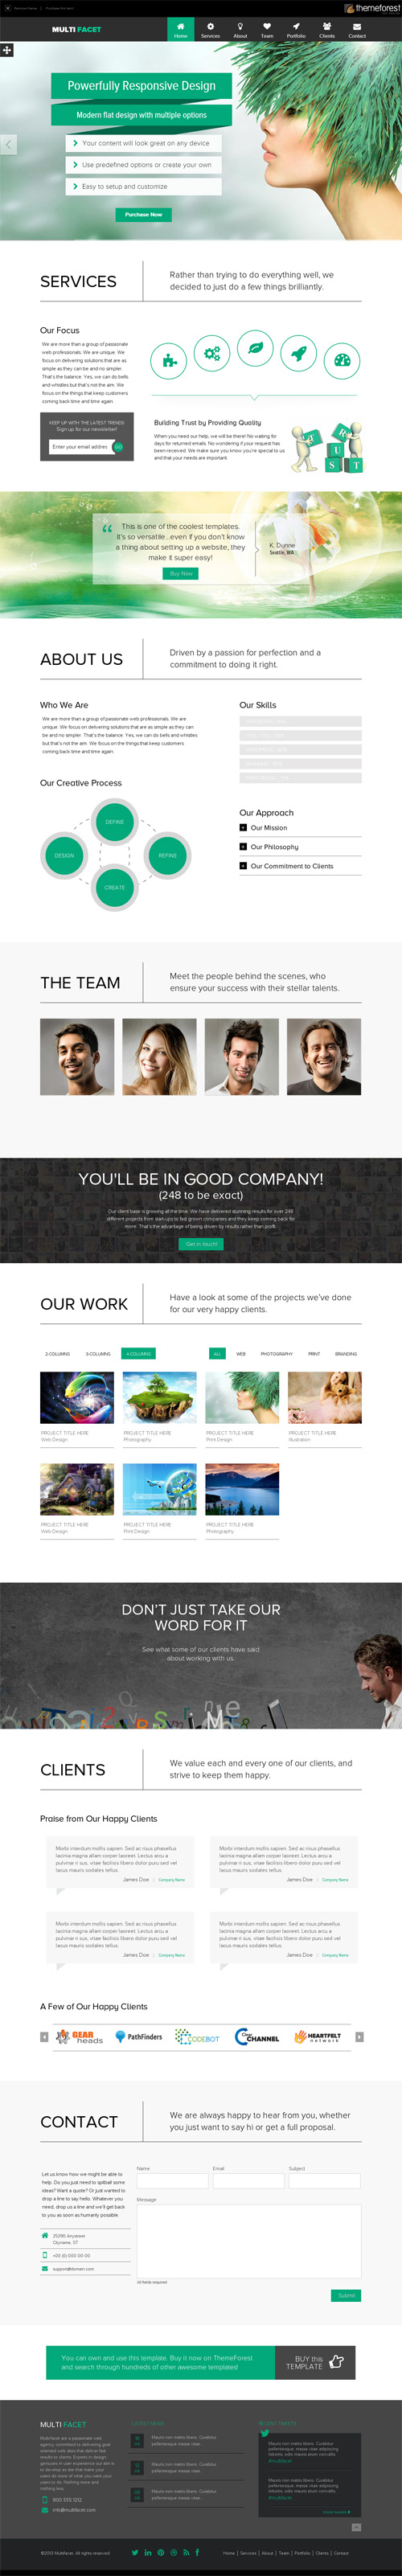 MultiFacet - Responsive One Page Template